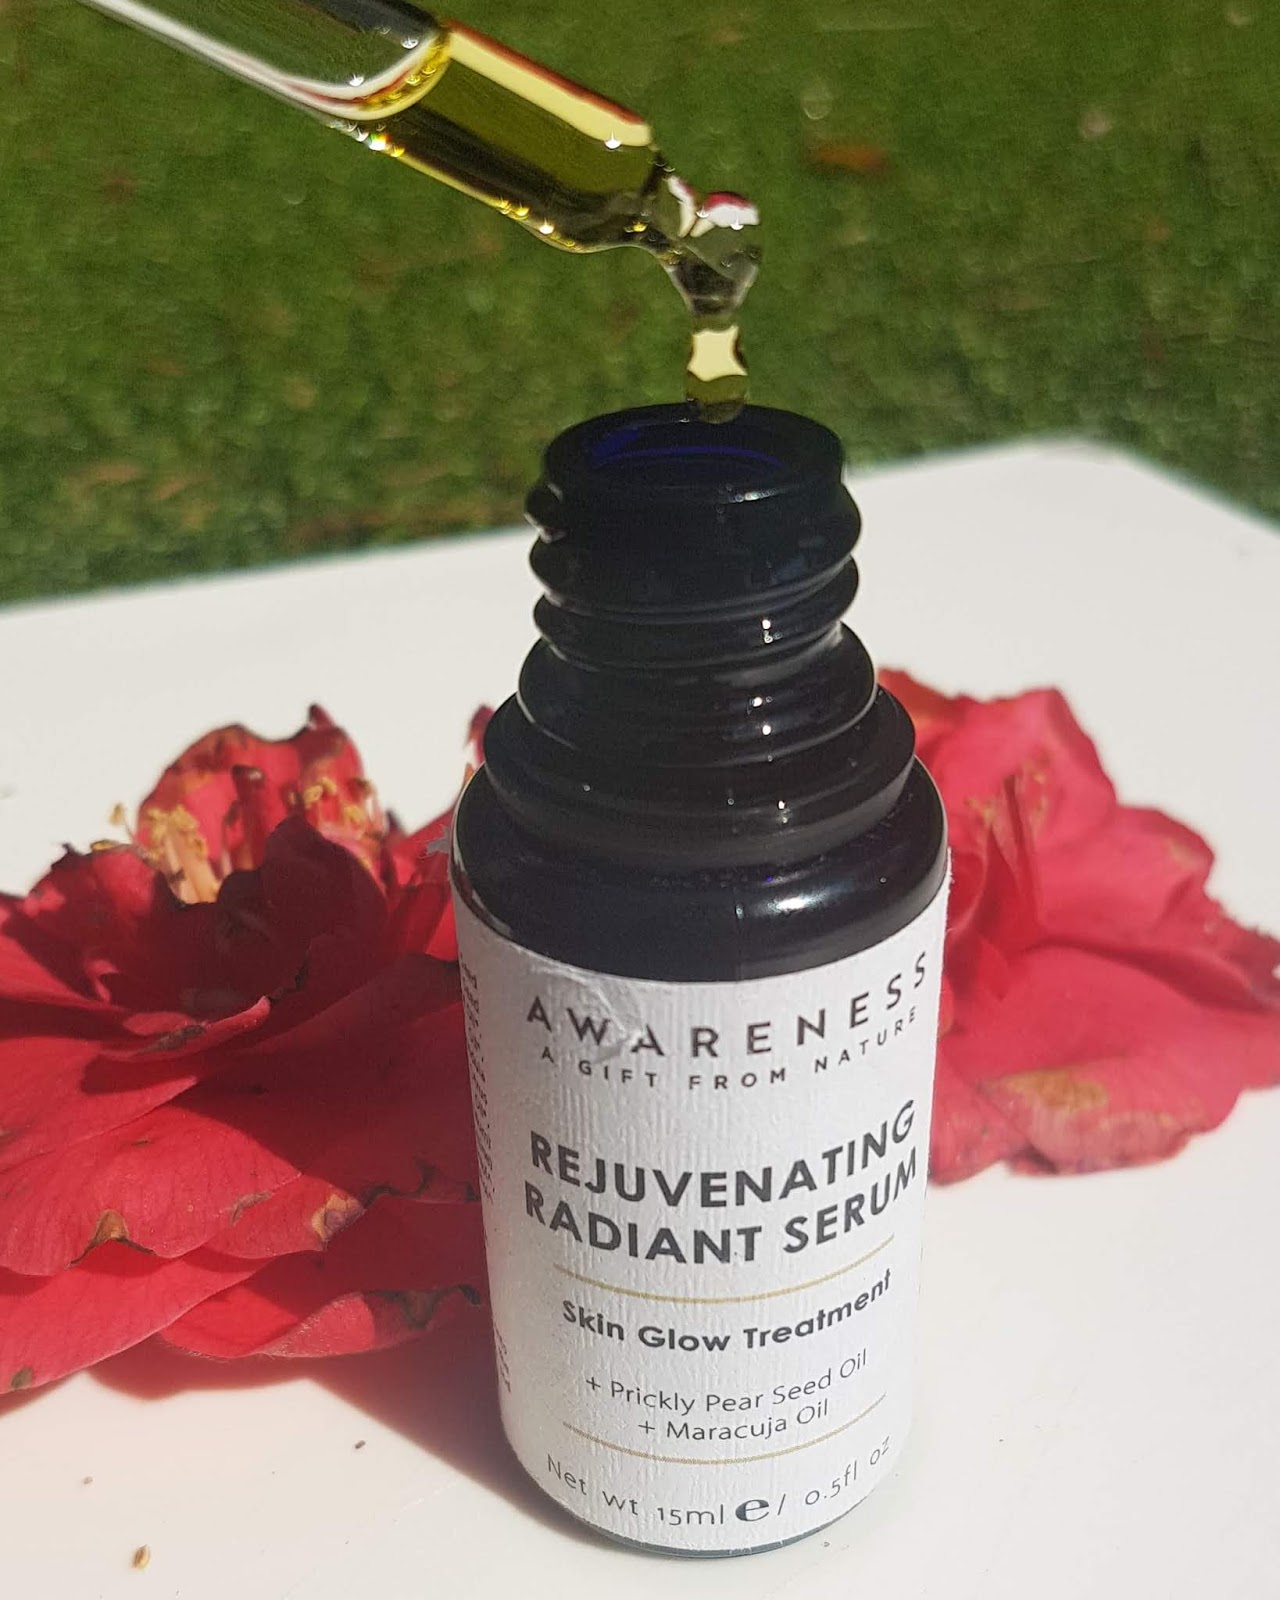 Awareness Organics Rejuvenating Radiant Serum Review